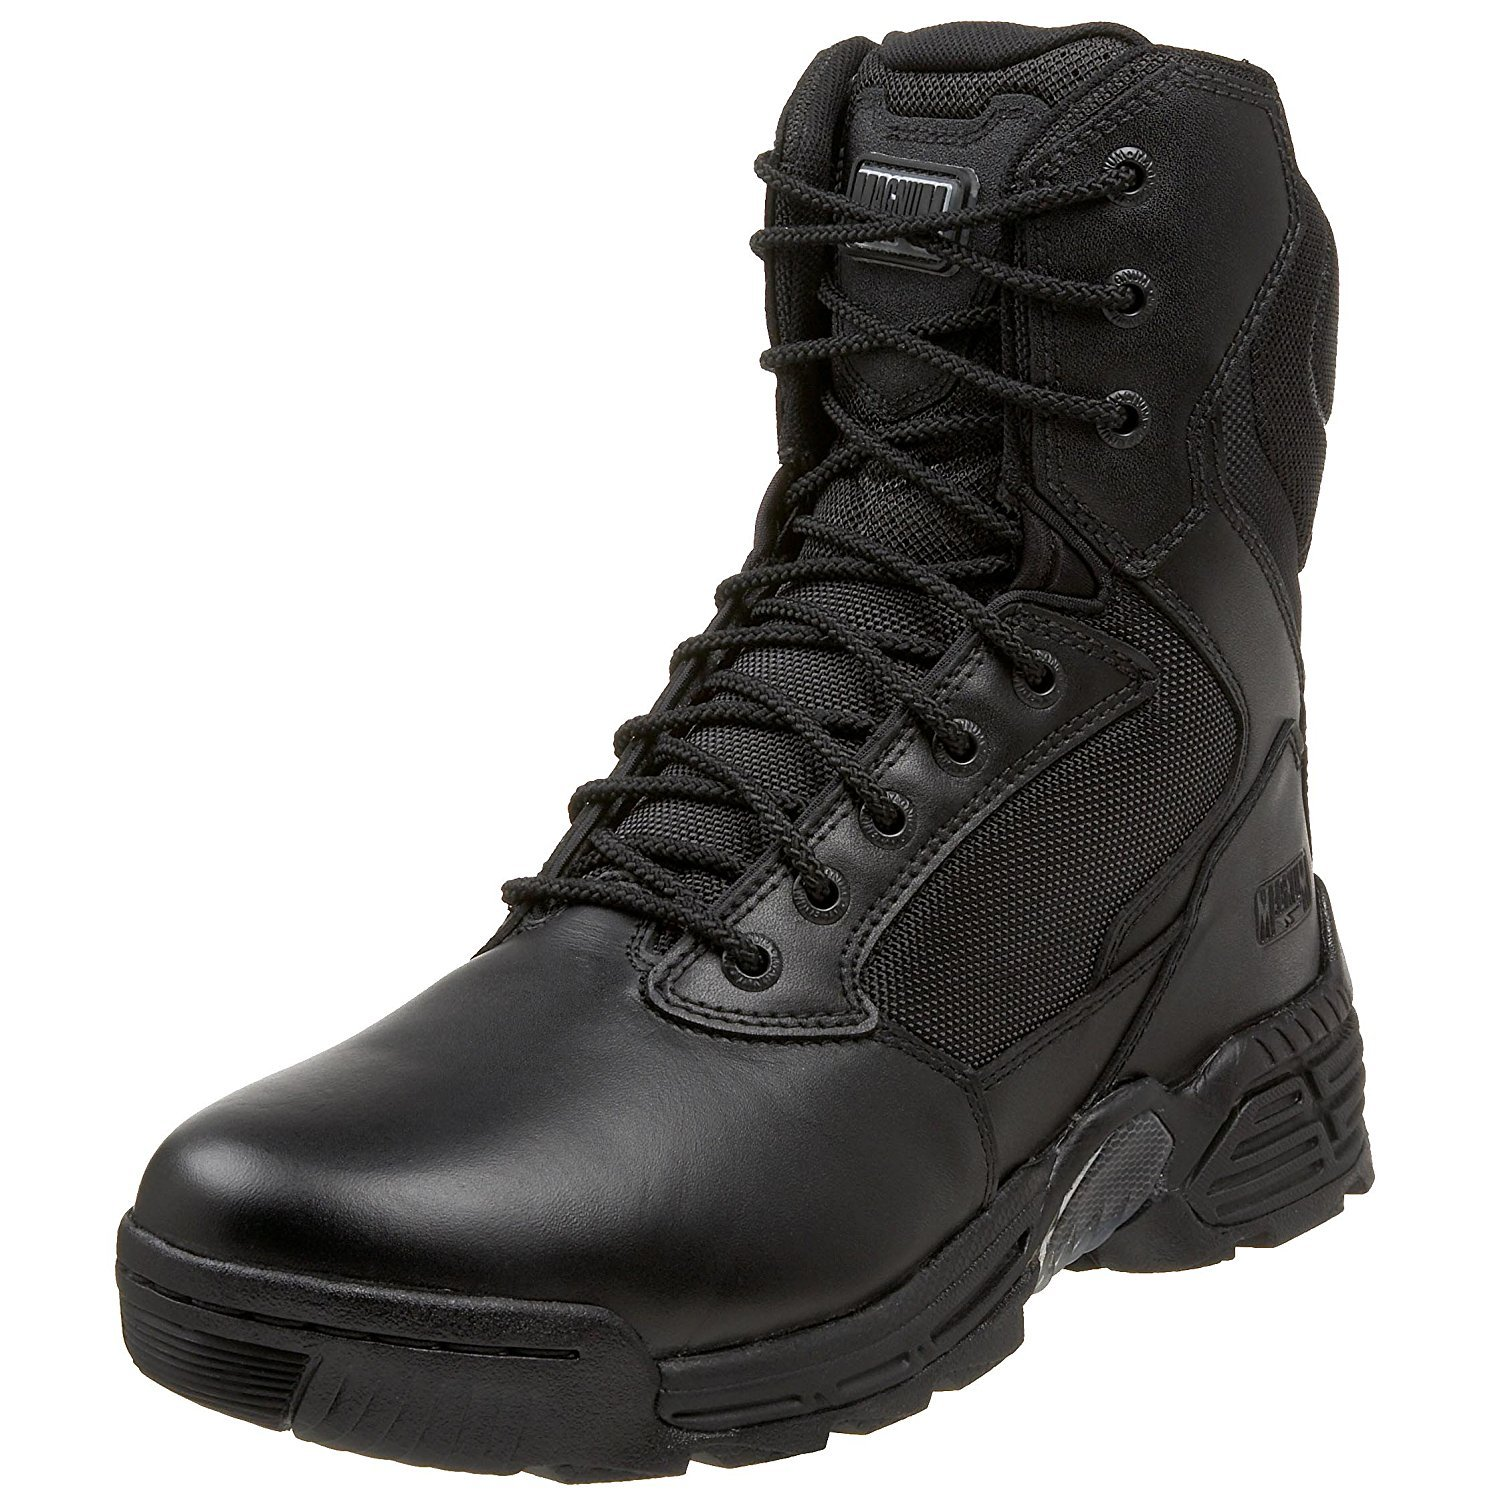 Magnum Women's Stealth Force 8.0 Boot,Black,7.5 M US